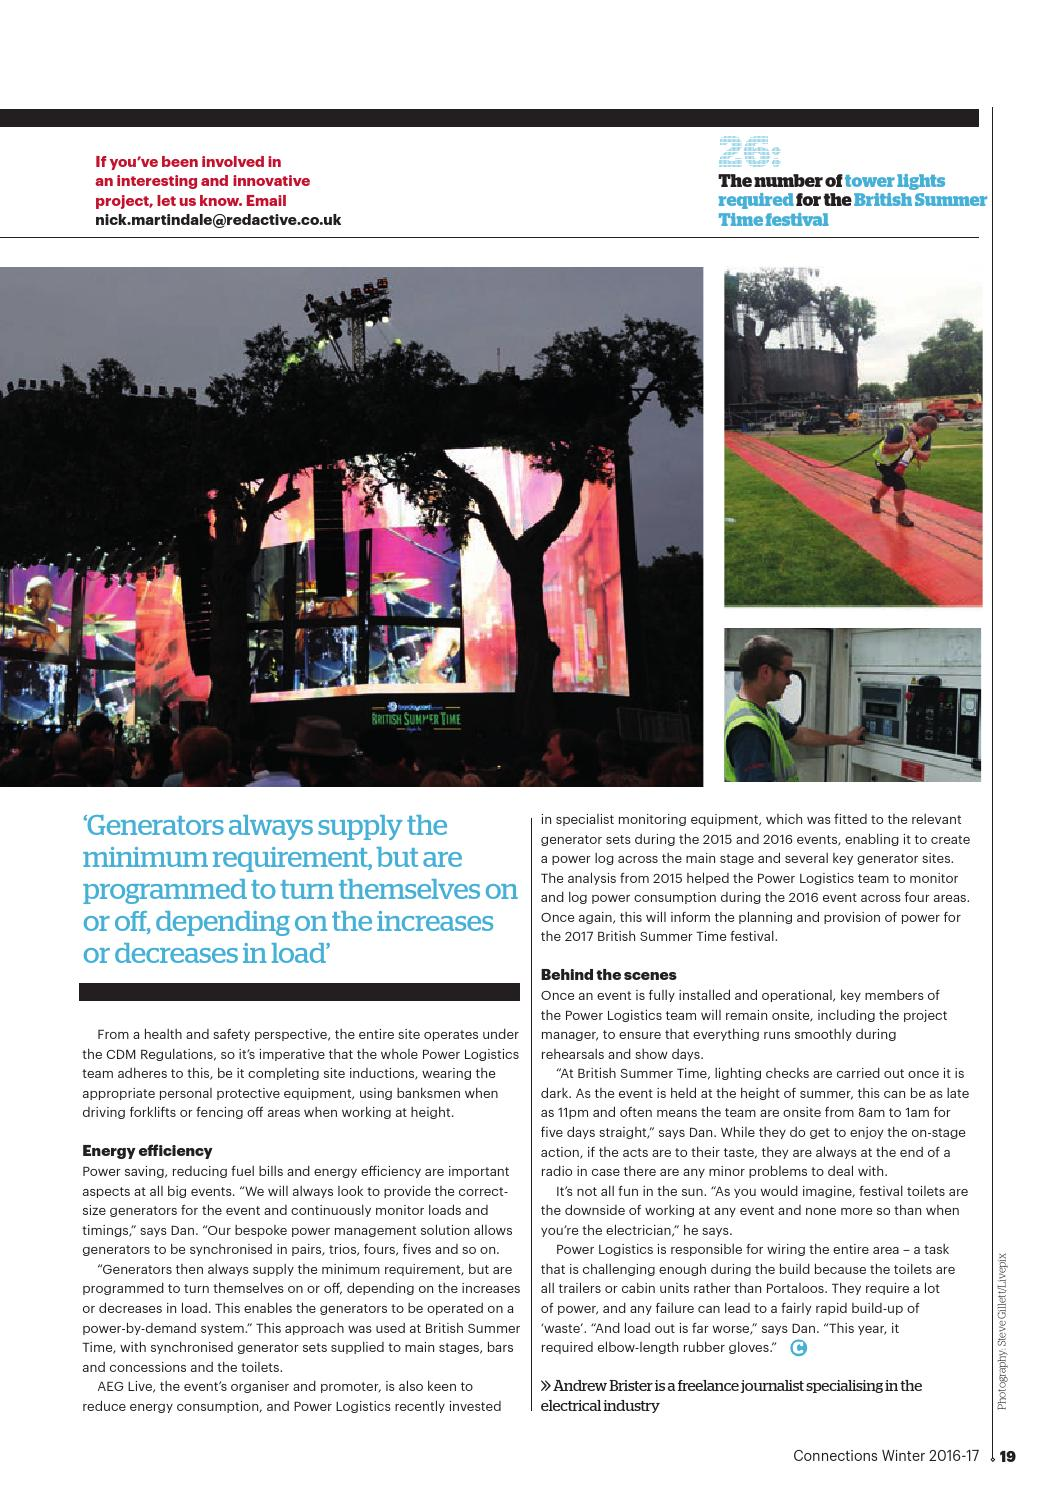 Connections Winter 2016-17 by Redactive Media Group - issuu